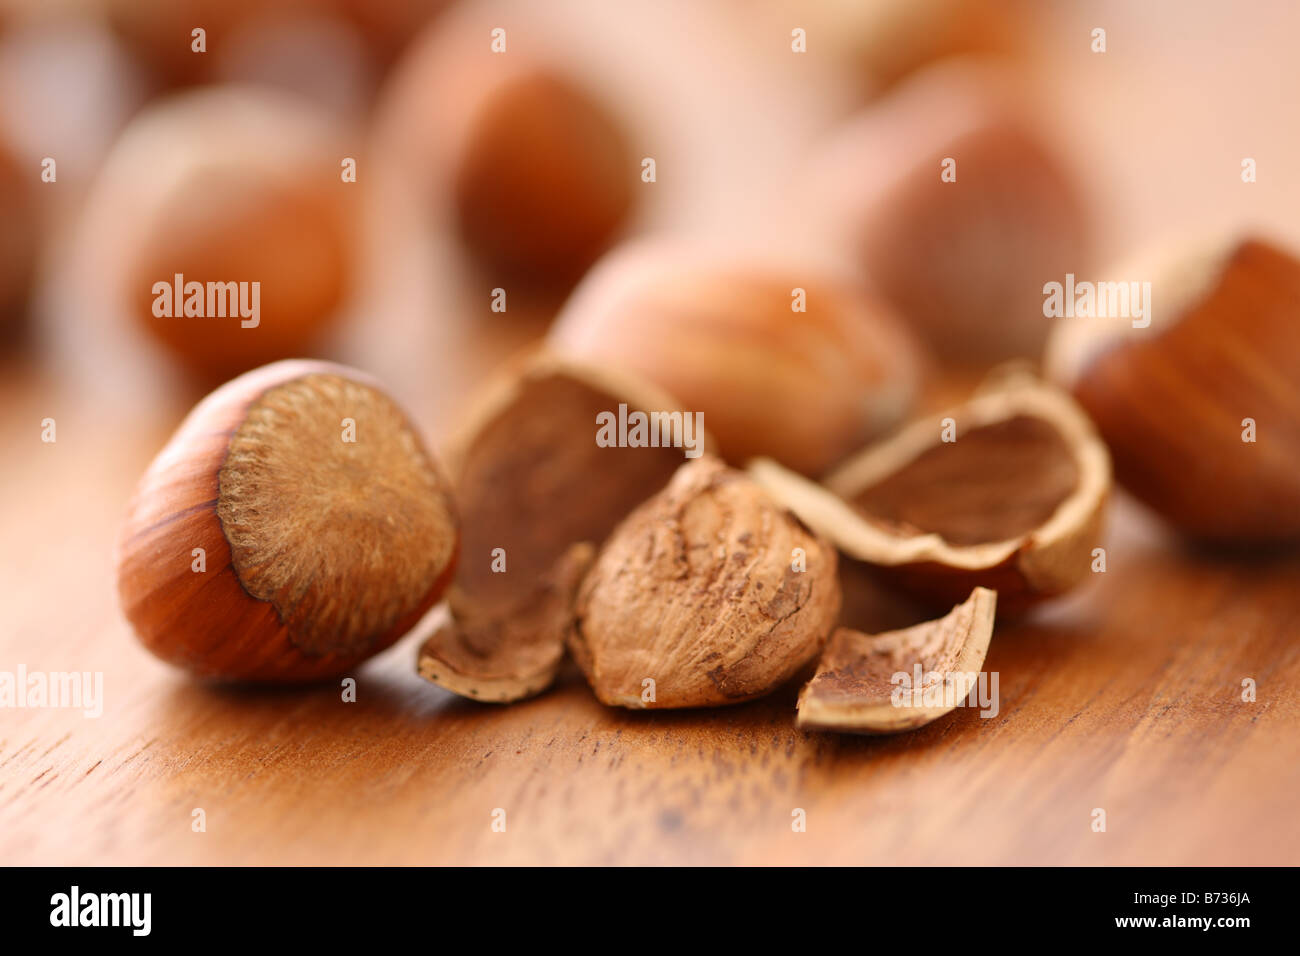 Close up of hazelnuts selective focus - Stock Image